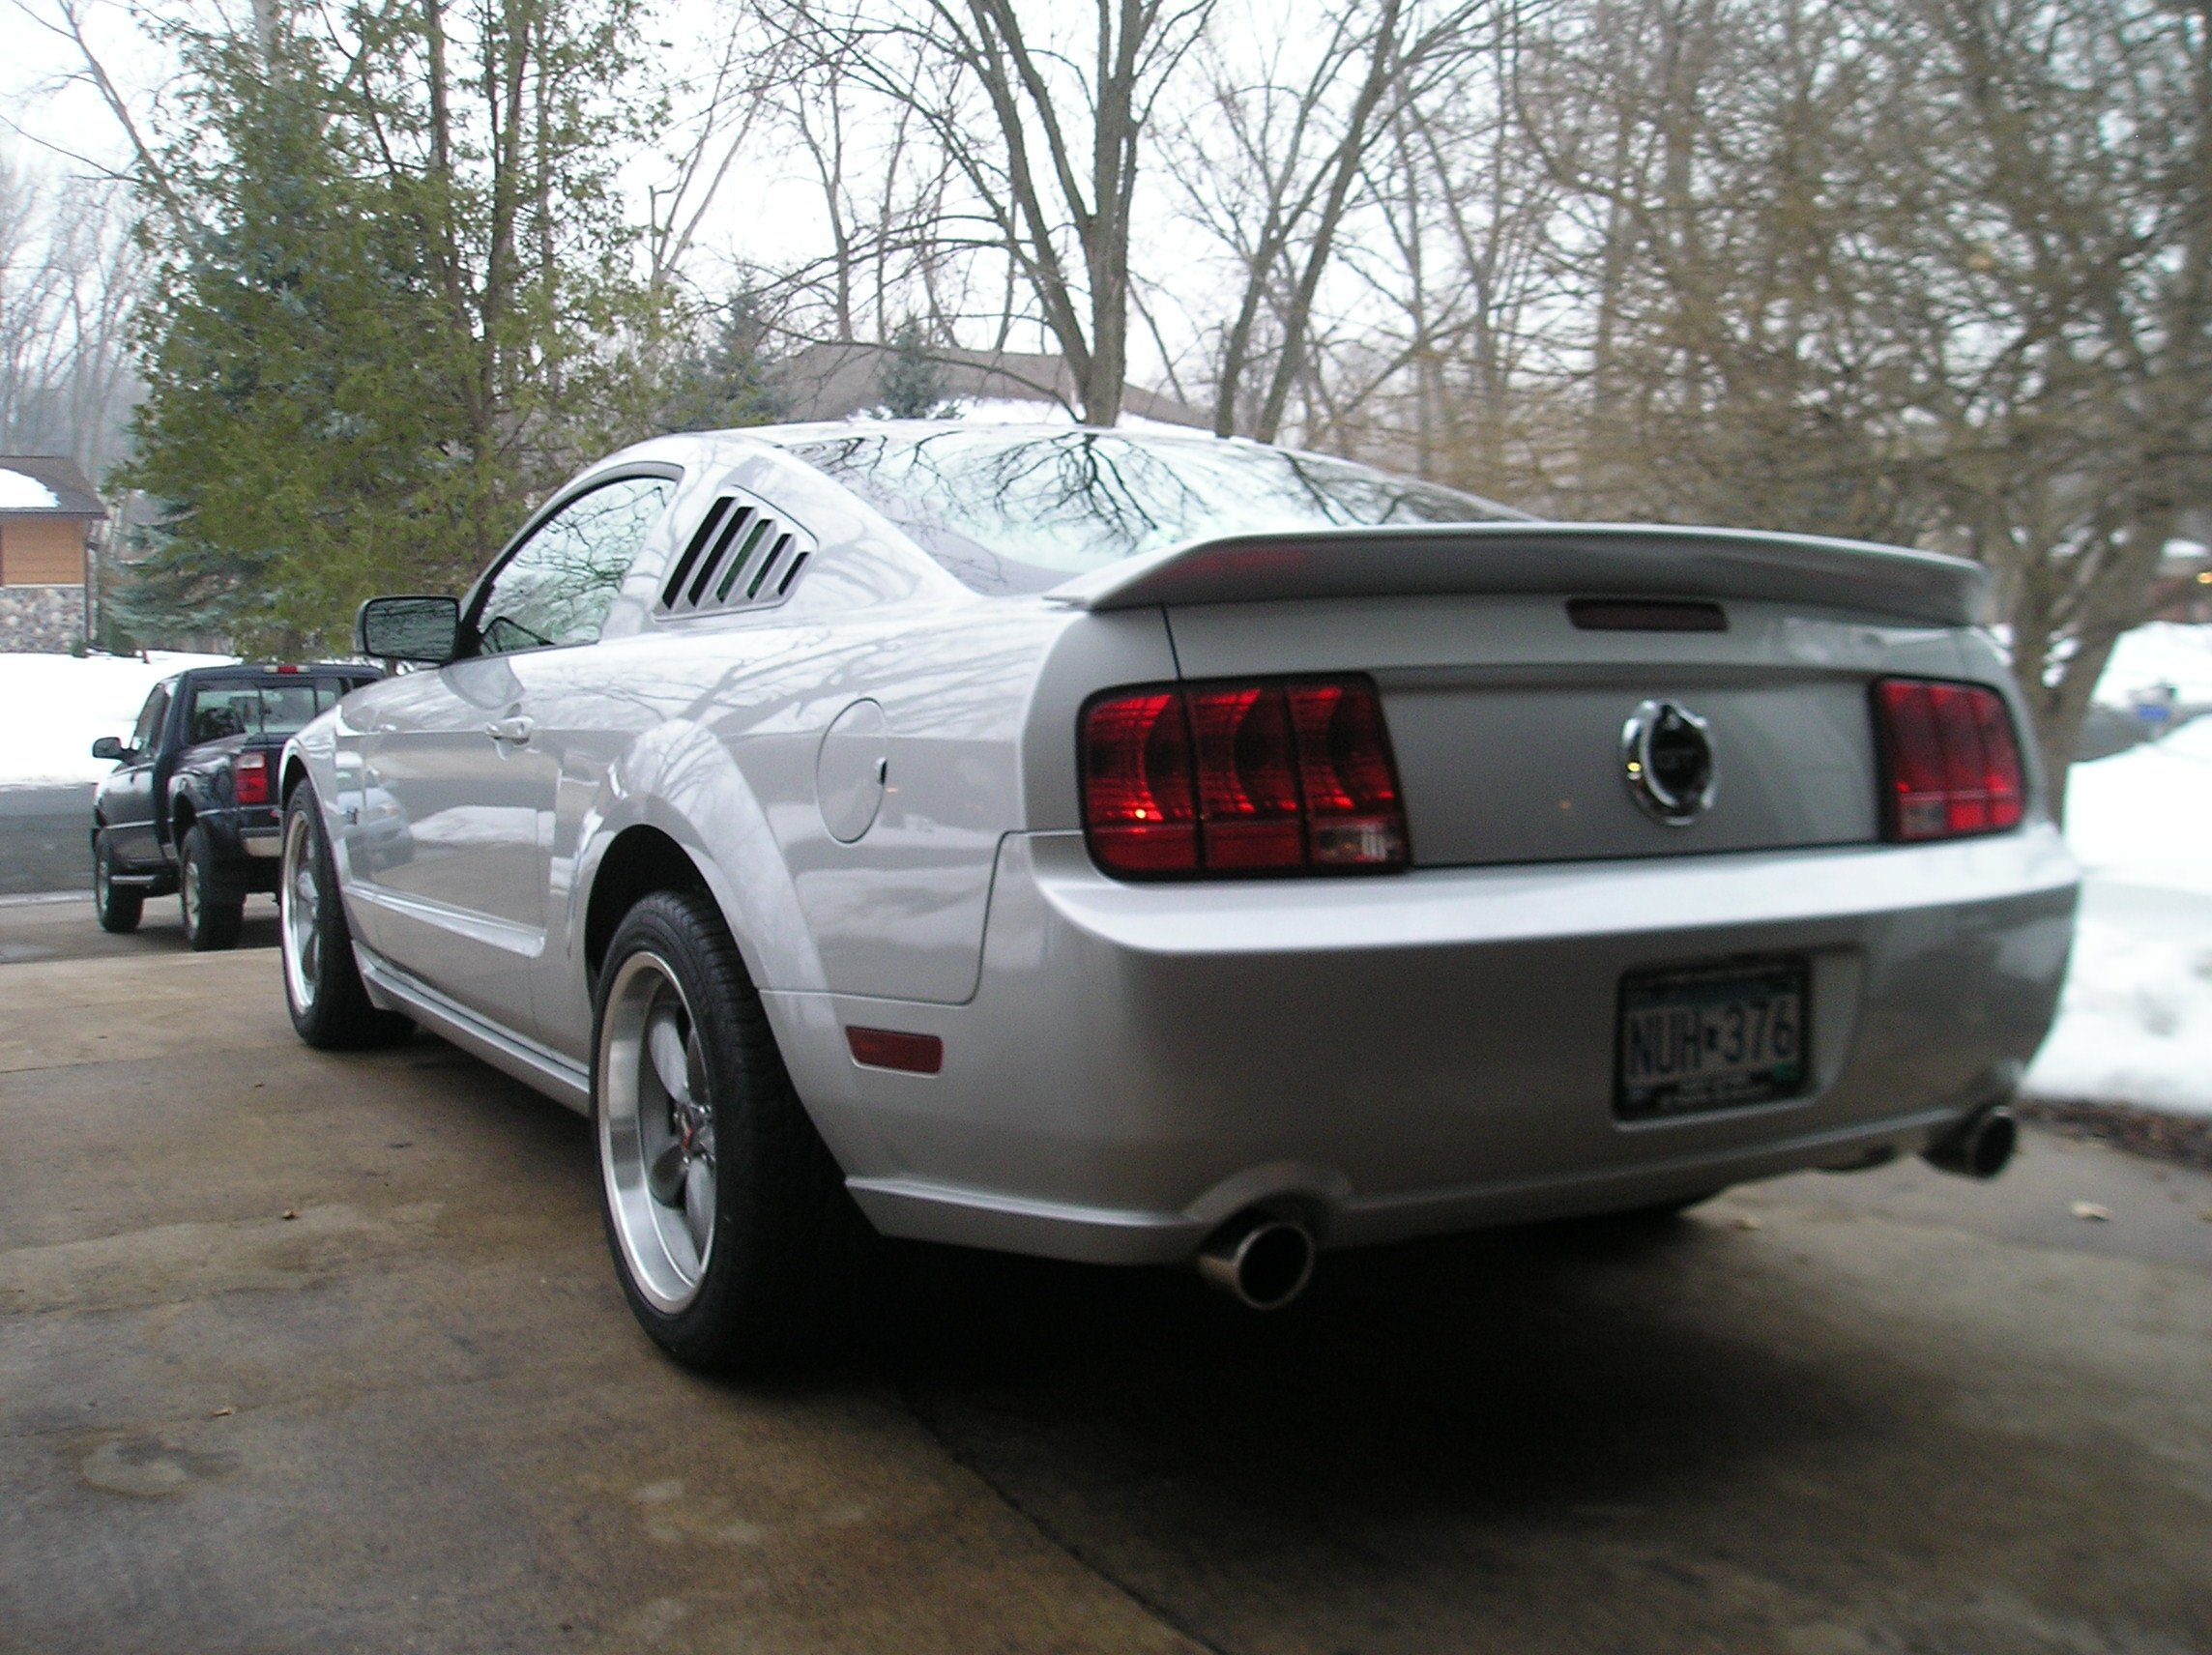 Ford Mustang Gt Deluxegt Premium Wcalifornia Package in addition Mustangdriverbottomcharcoal Steering together with D Deluxe Vs Premium Mustang additionally D Interior Mods Added Gt Dsc in addition Ford Mustang Gt Premium Coupe Angular Front. on 2005 ford mustang gt deluxe